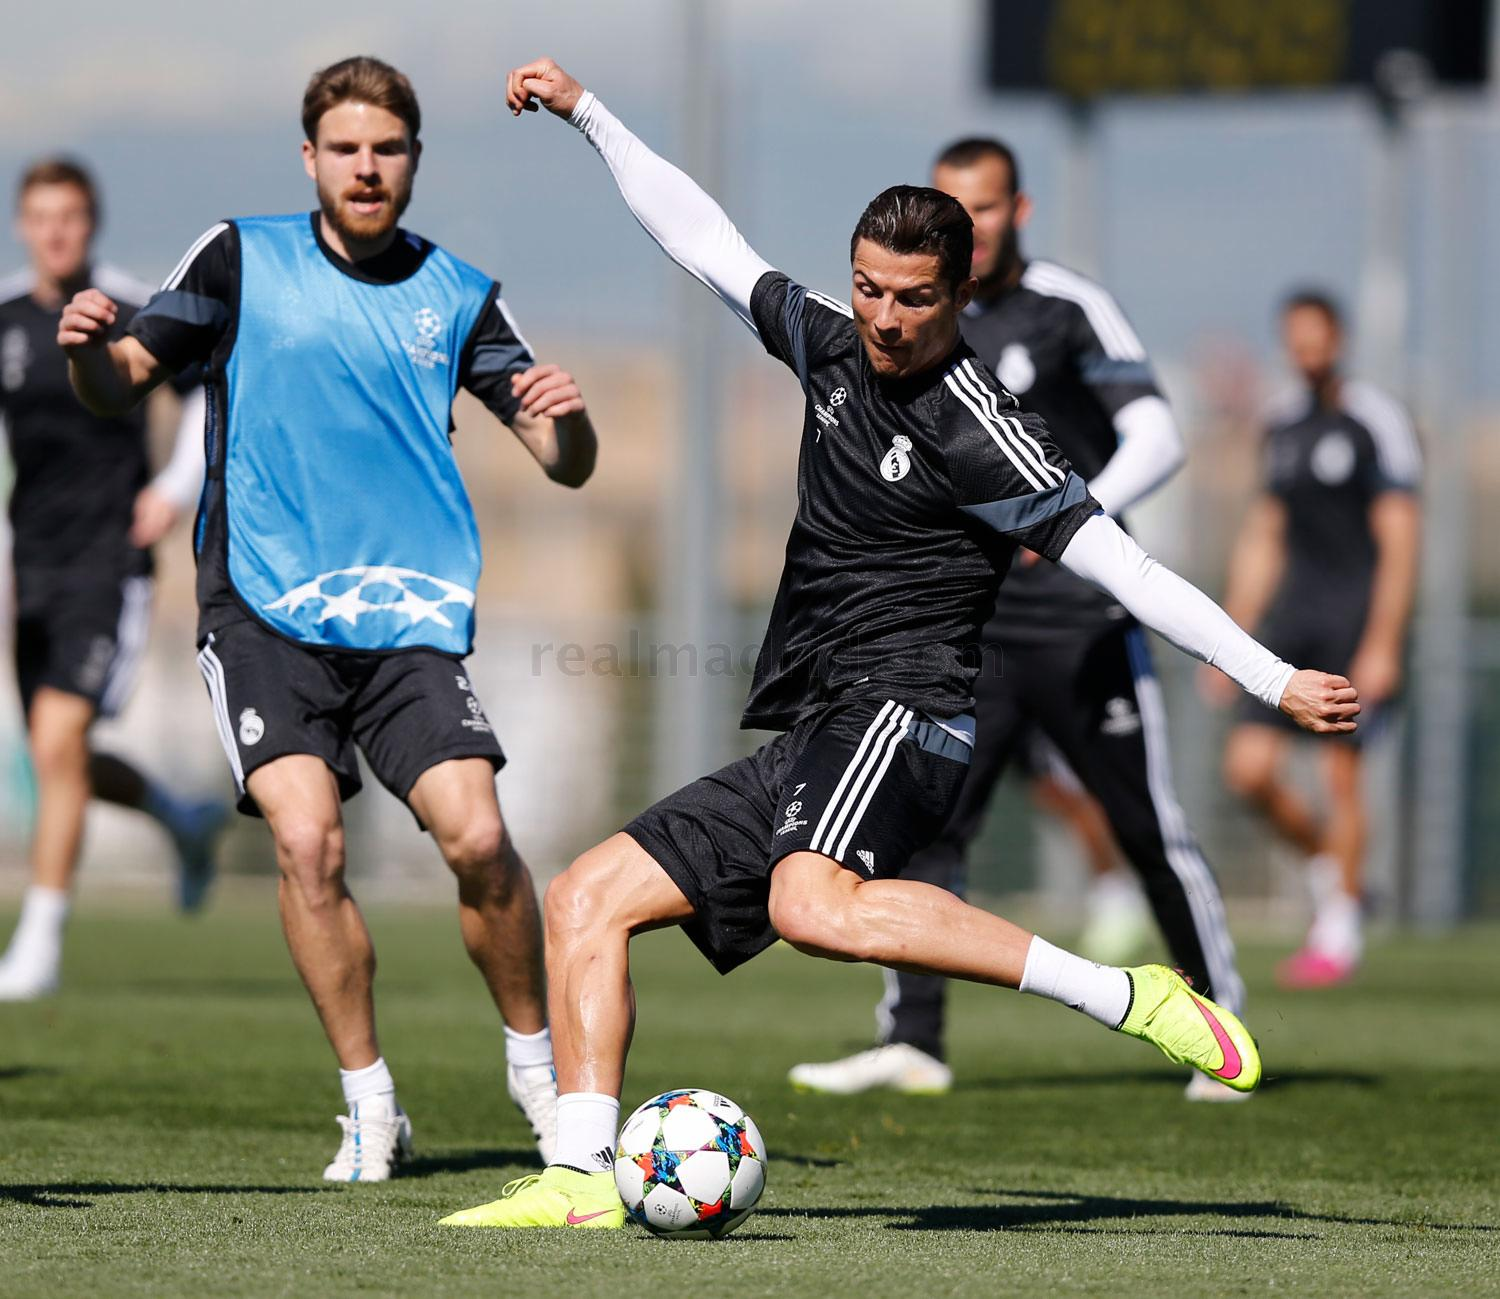 Real Madrid - Entrenamiento del Real Madrid - 09-03-2015